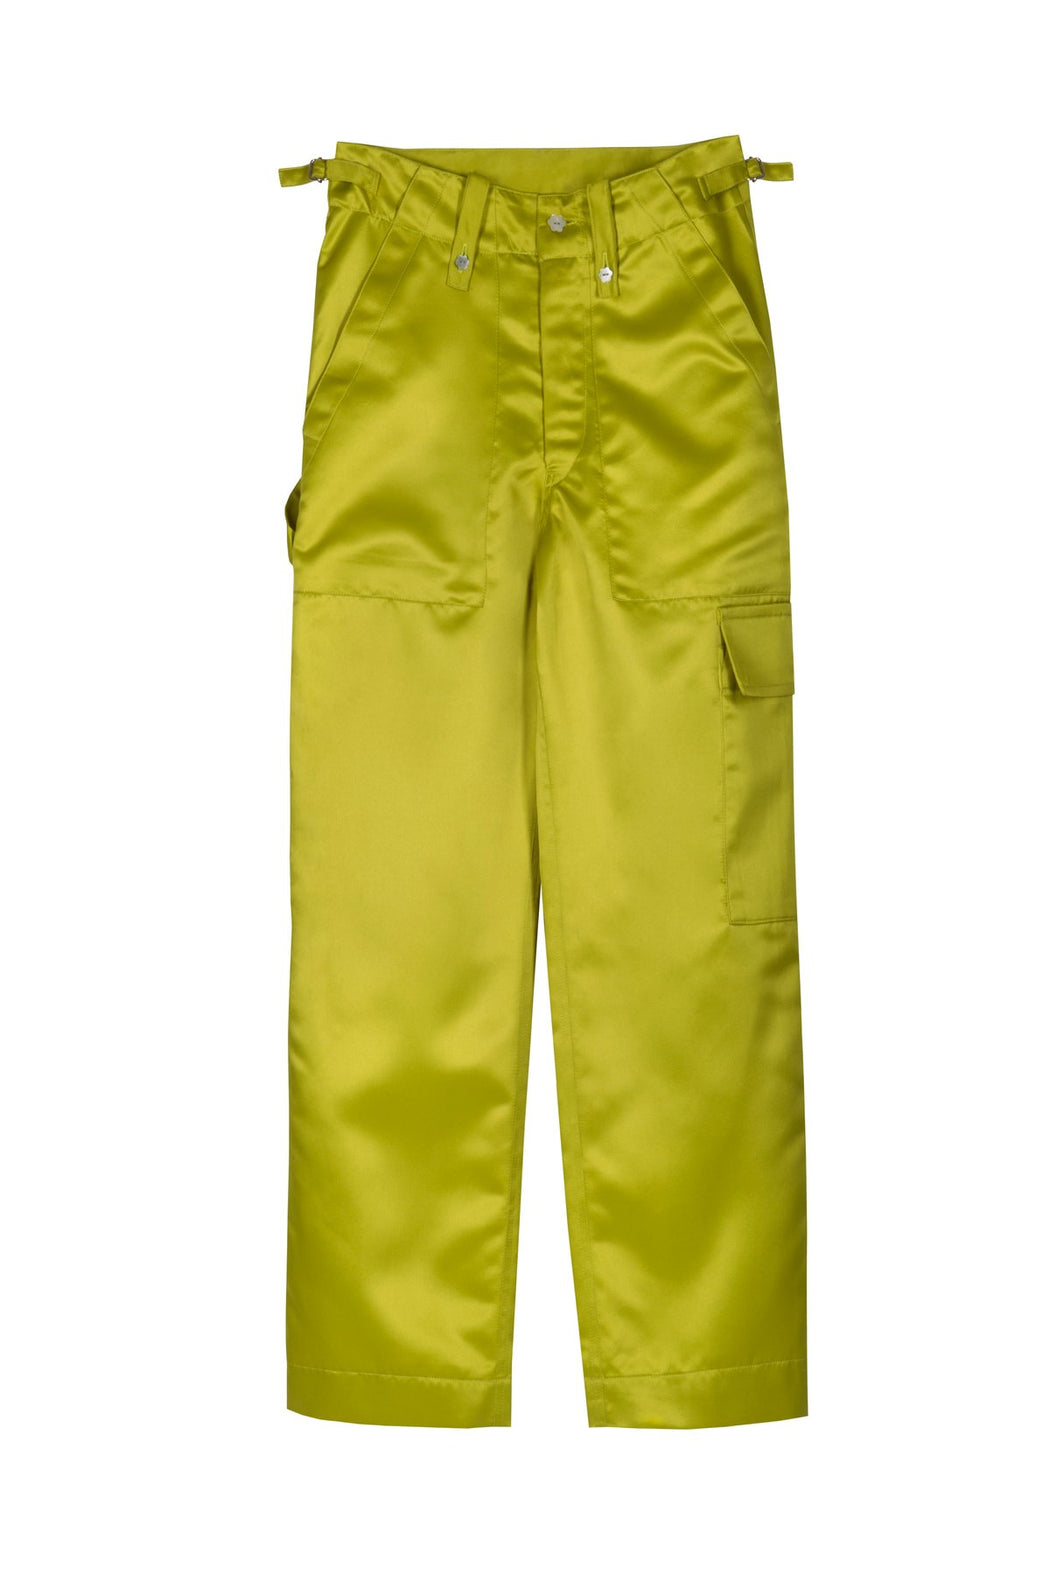 Jacarandas Green Army Trousers